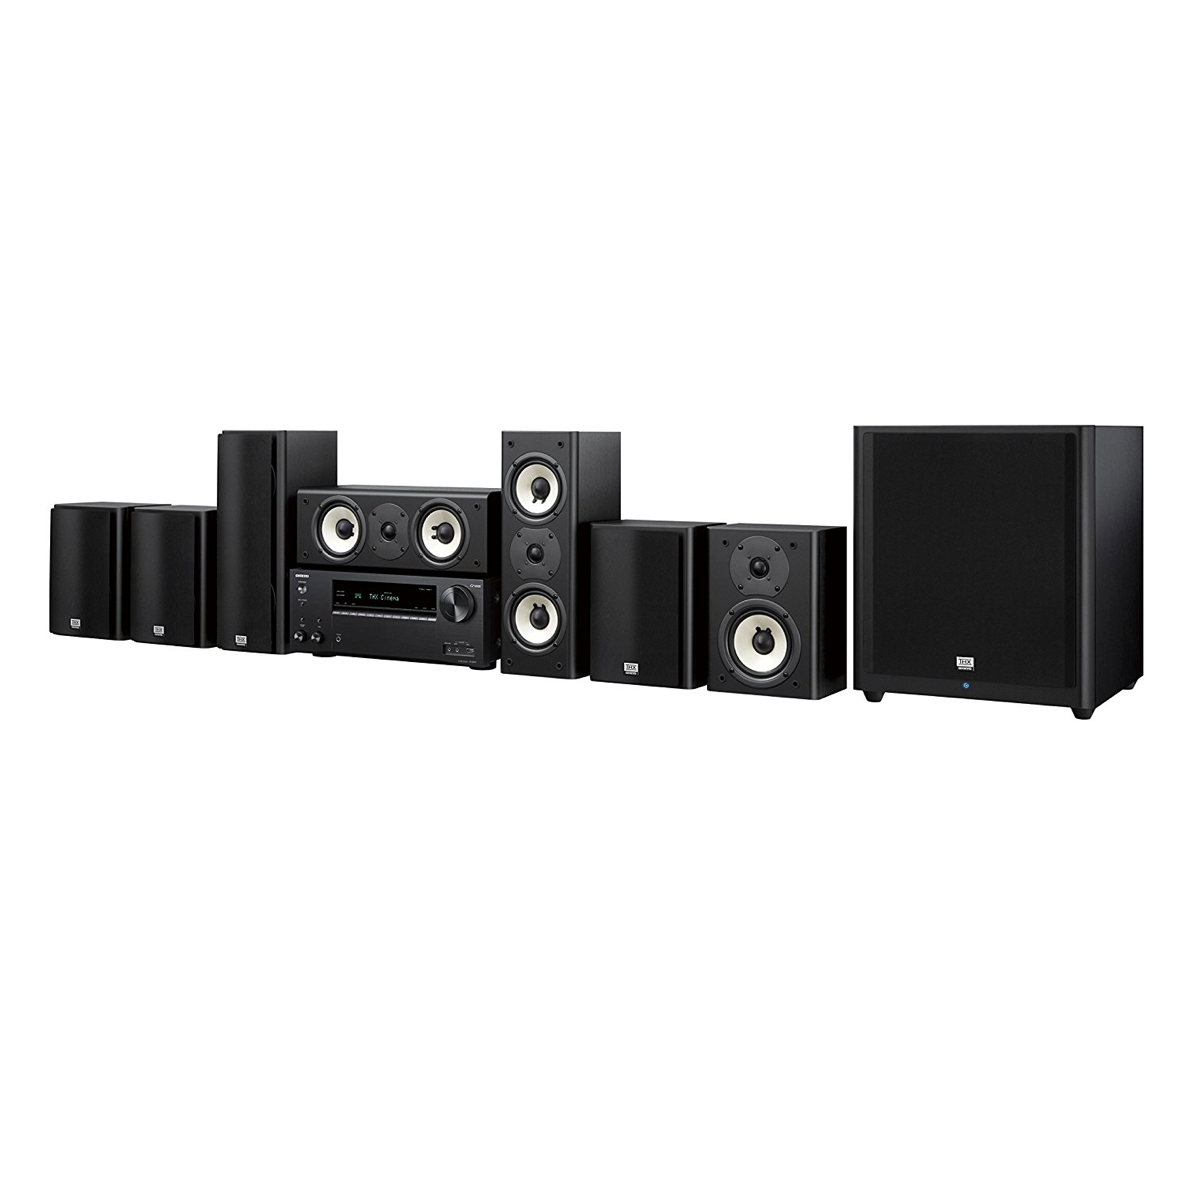 Onkyo HT-S9800THX - 7.1 Channel Home Theatre System, Onkyo, Home Theatre in a Box - AVStore.in